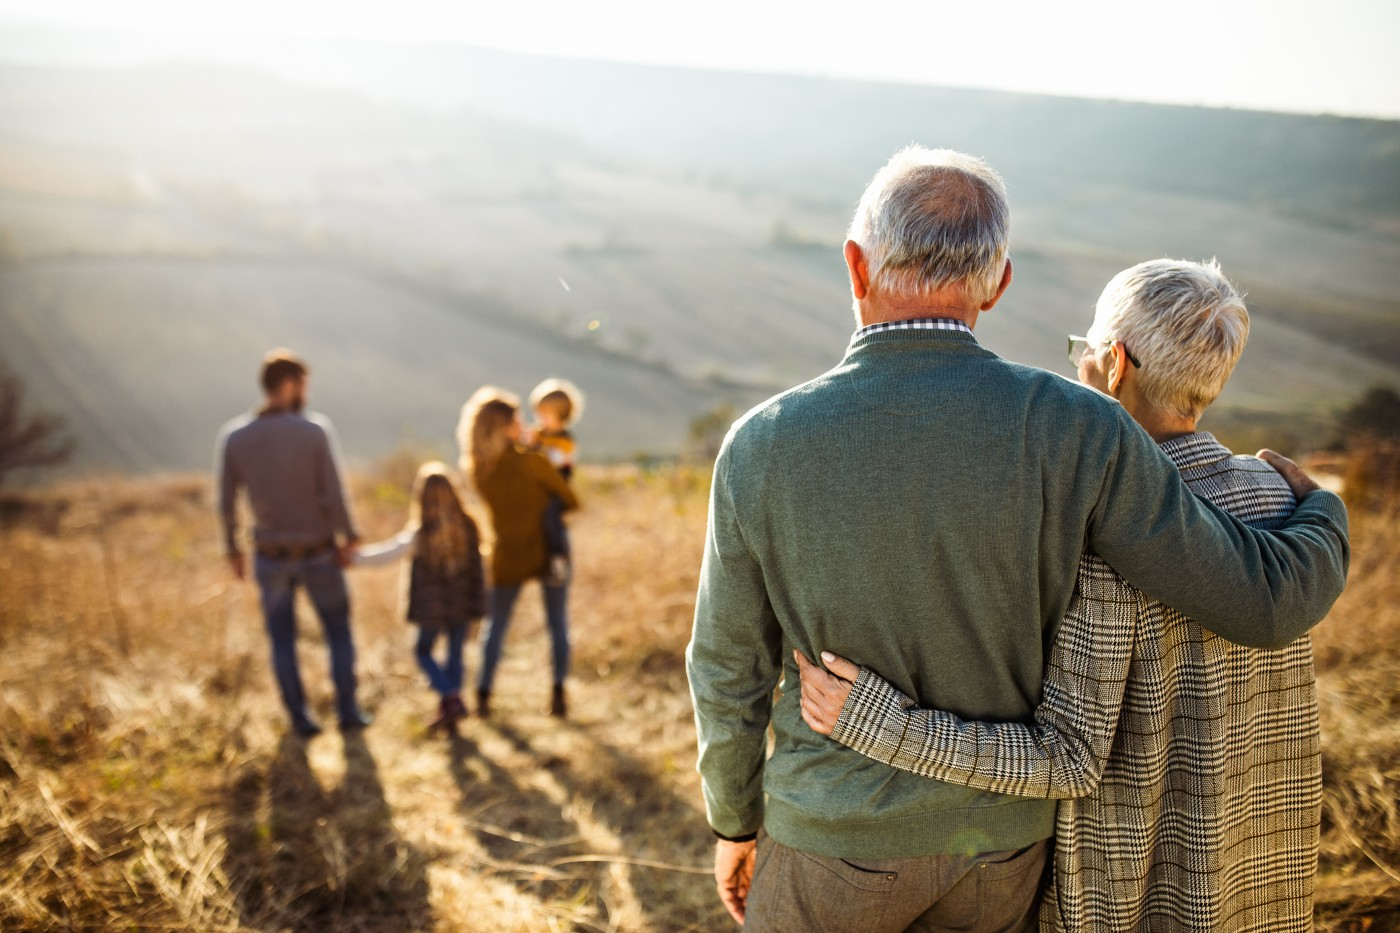 https://tickertapecdn.tdameritrade.com/assets/images/pages/md/Elderly couple with arms around each other gazing at their family: Estate planning basics